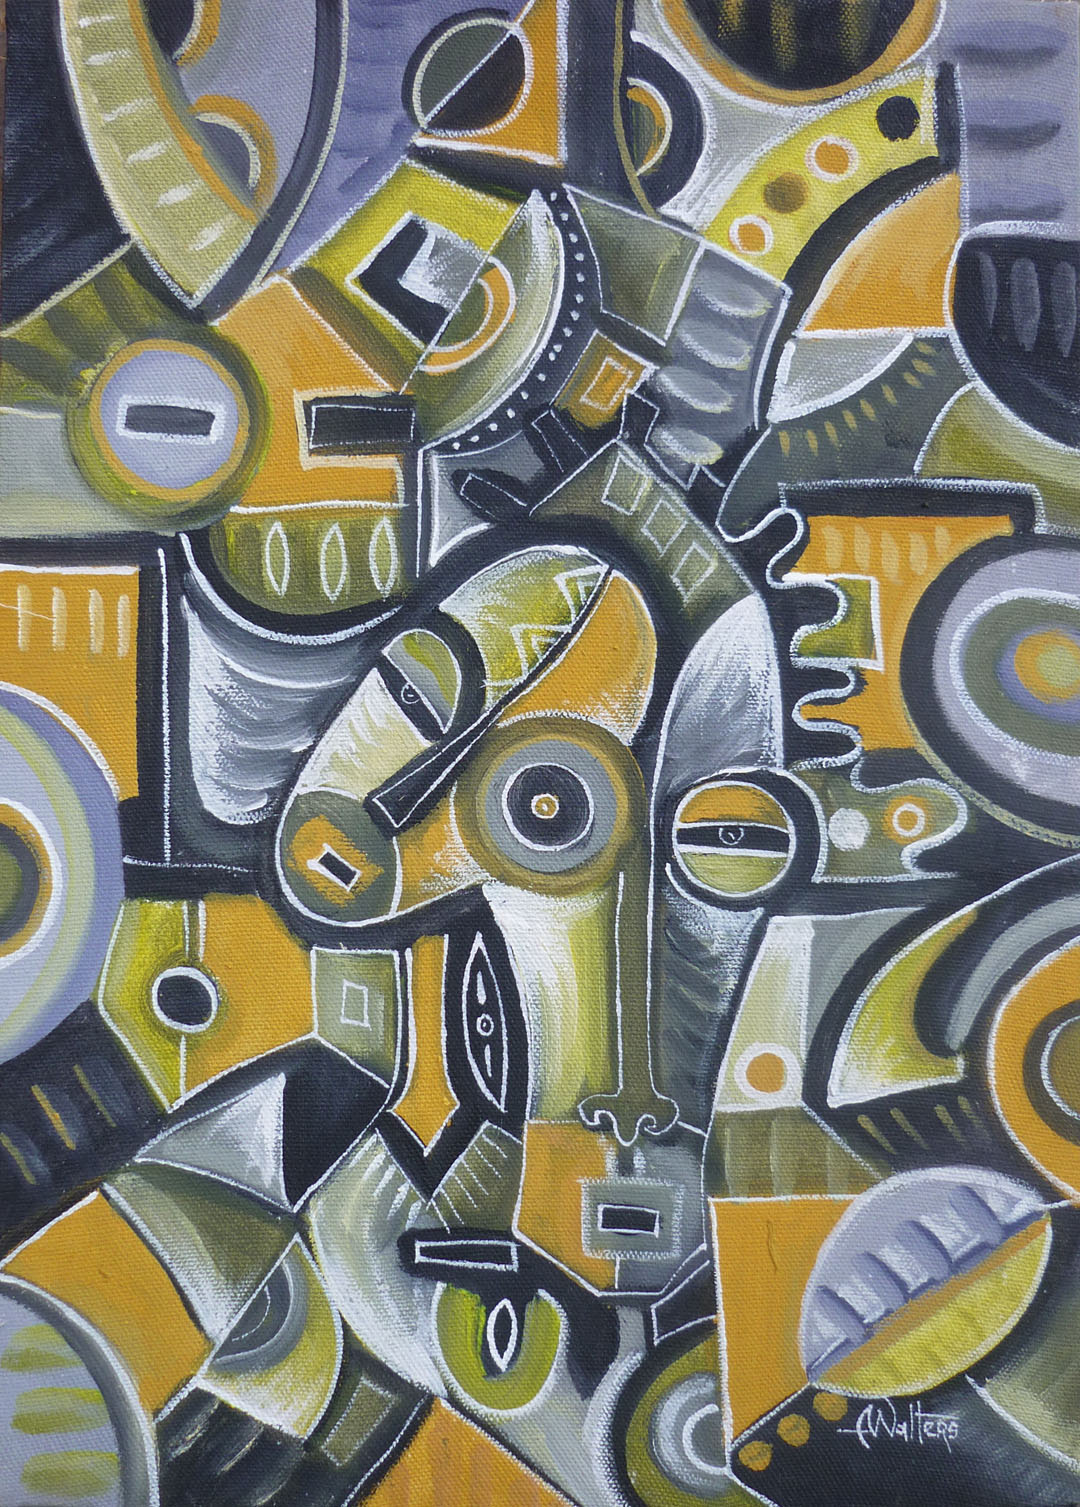 Abstract figurative painting from Africa by Angu Walters.